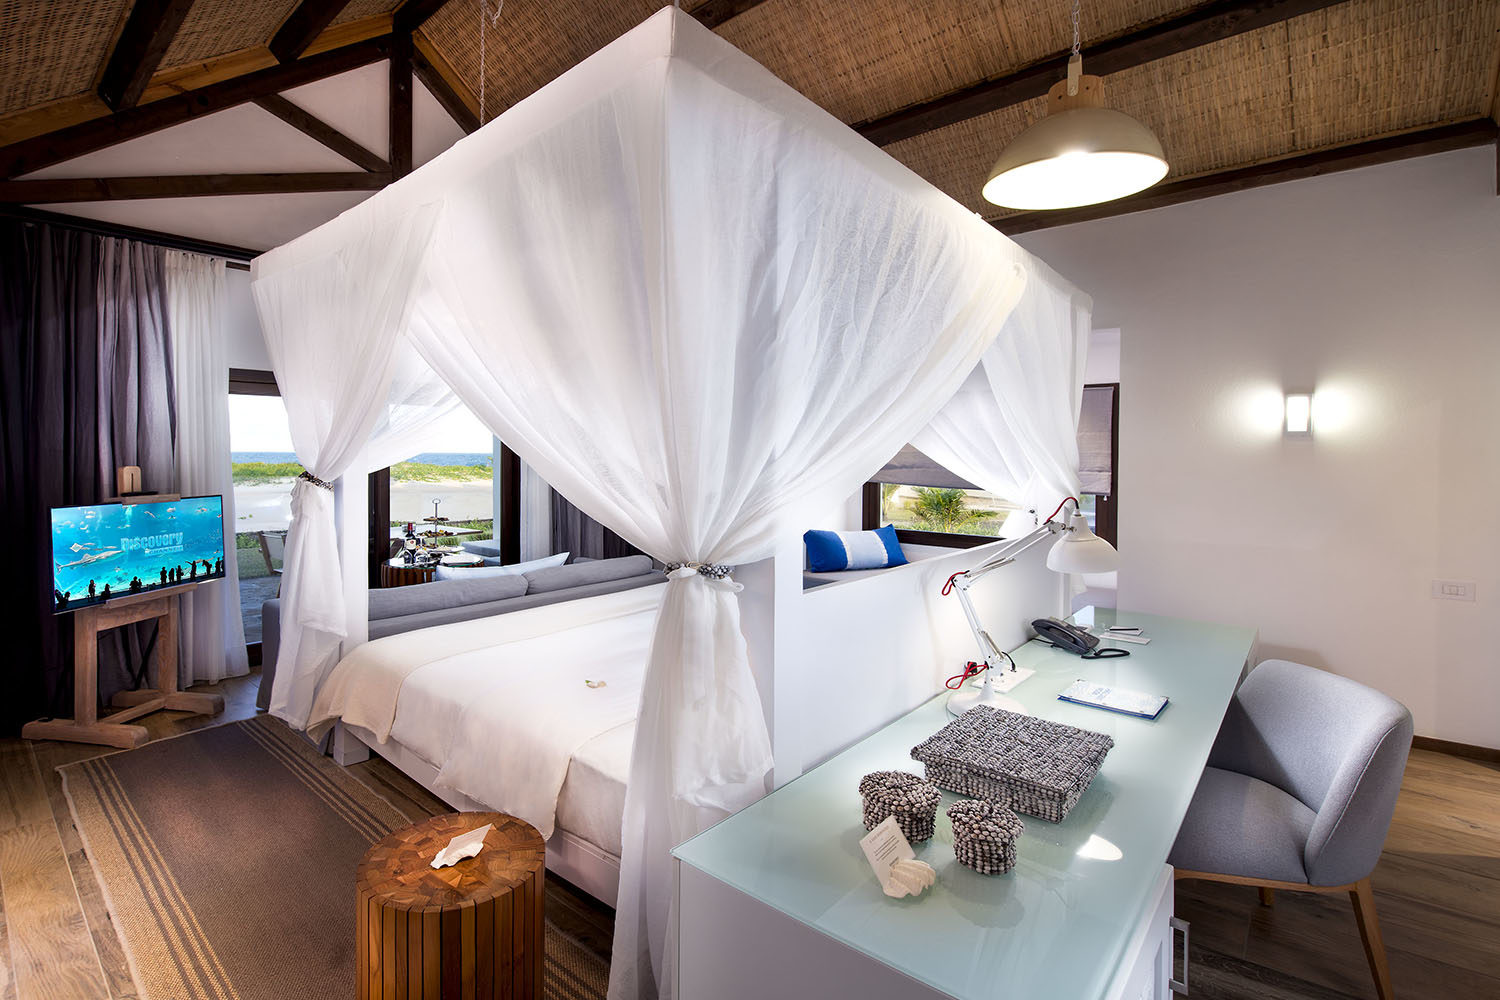 diamonds mequfi beach resort mozambique-lodges-pemba-zambia-in-style-untouched-paradise-bungalows-bed